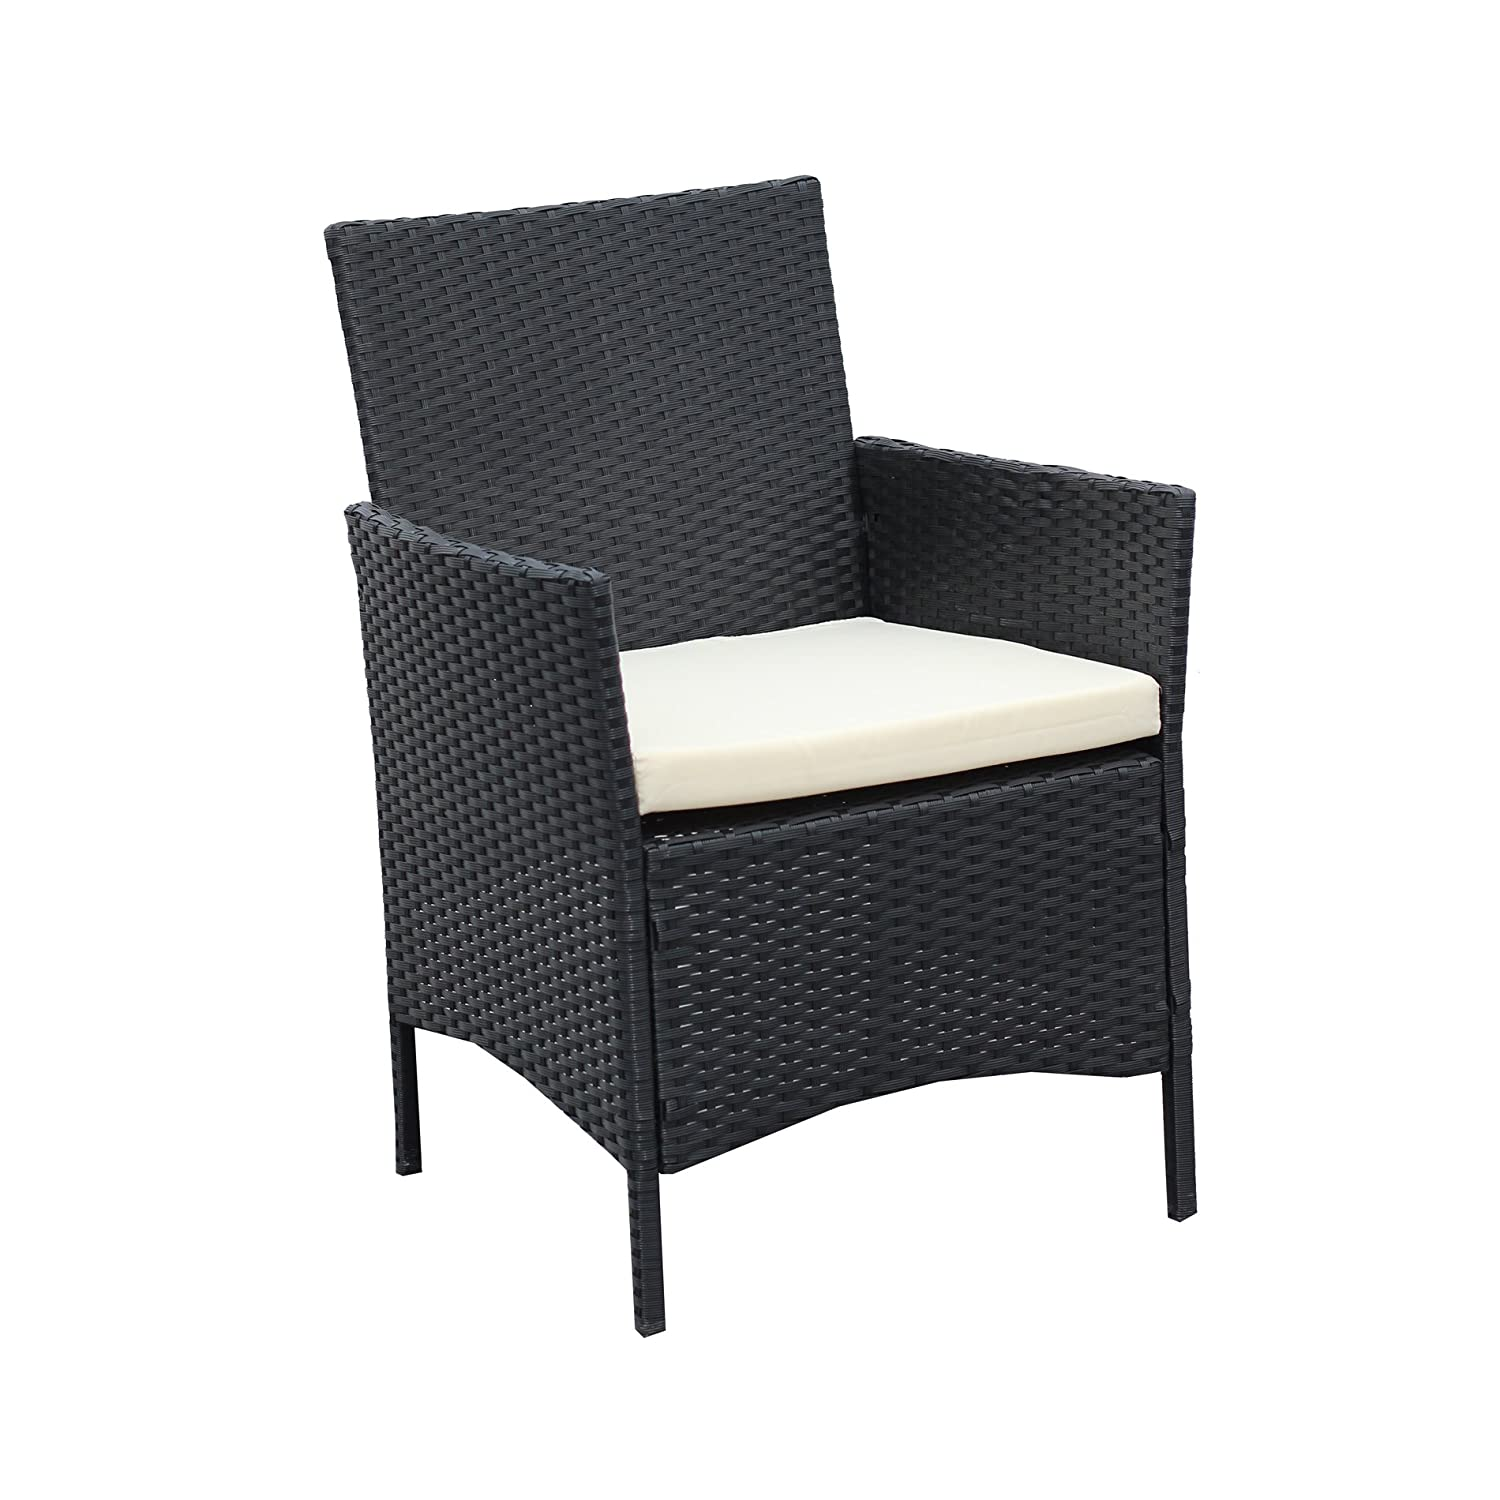 Rattan Outdoor Chairs Part - 28: Amazon.com : Patio Furniture Set Clearance Rattan Wicker Dining Table Chair  Indoor Outdoor Furniture Set Balcony Sofa Bench (Black) : Patio, Lawn U0026  Garden